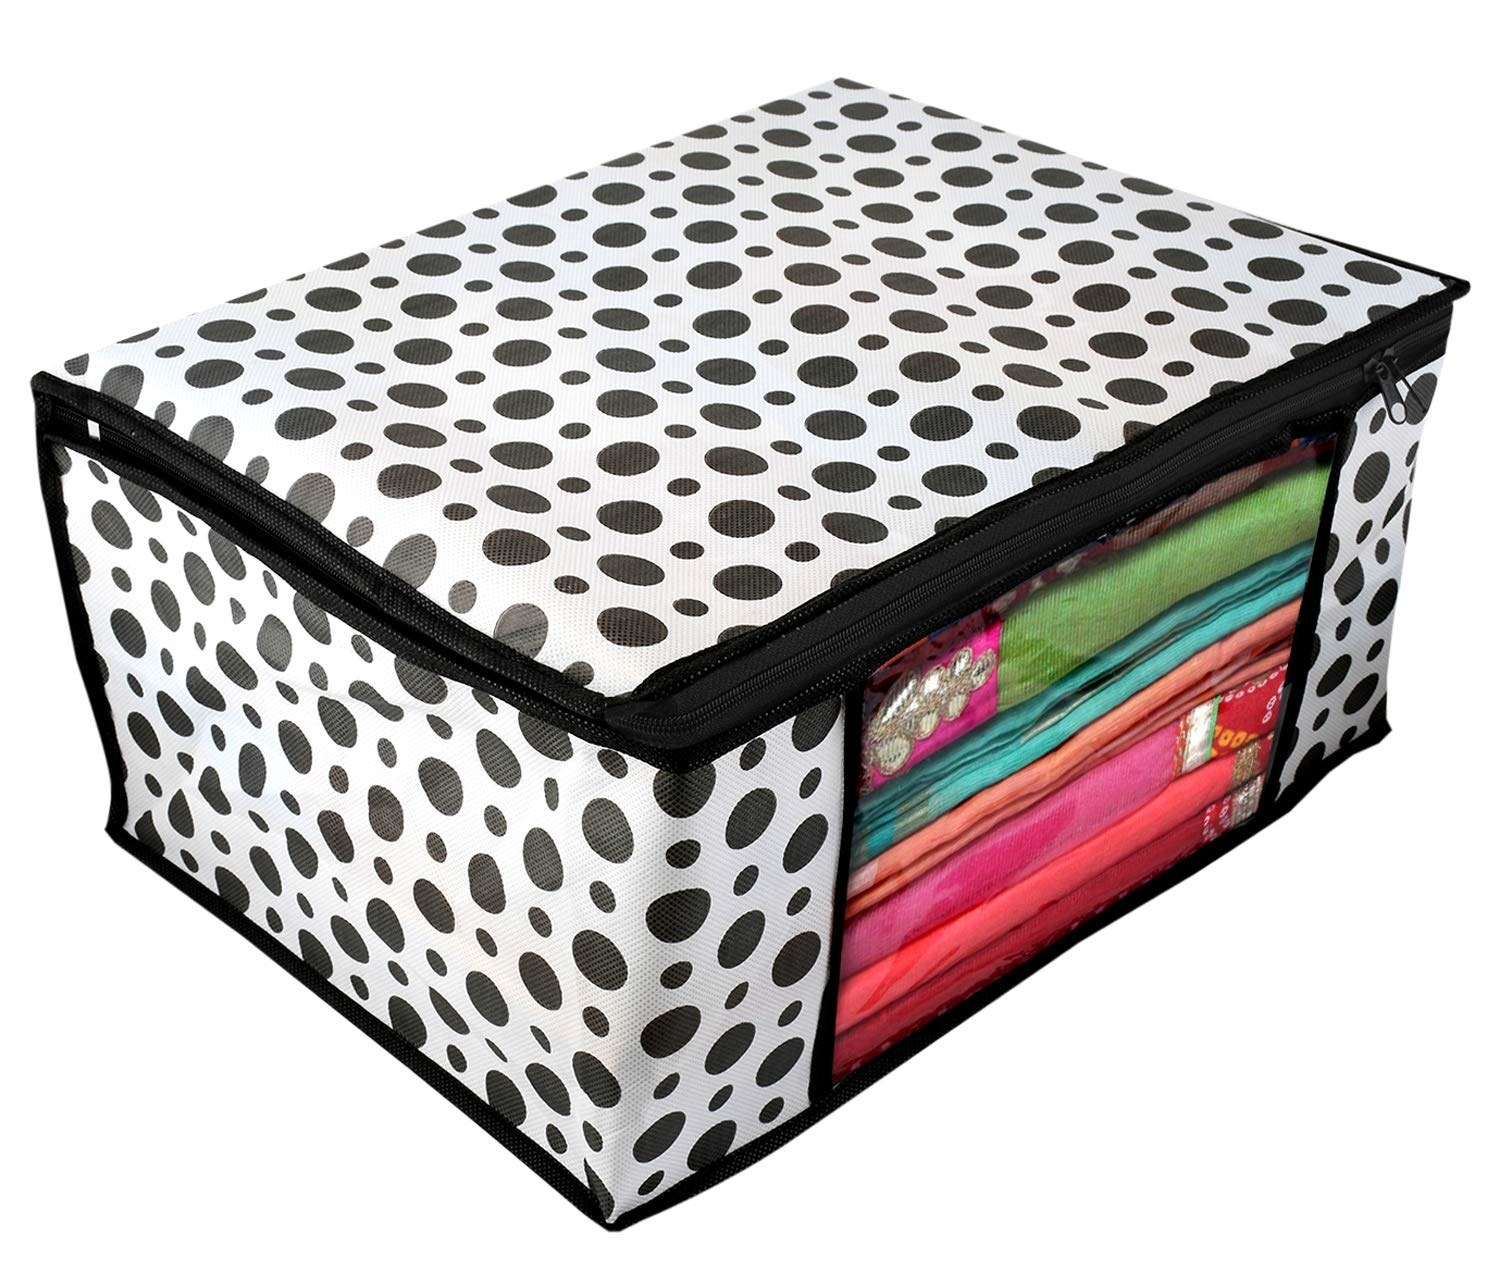 Sarees kept in a black and white polka dot clothes organiser with a transparent window.